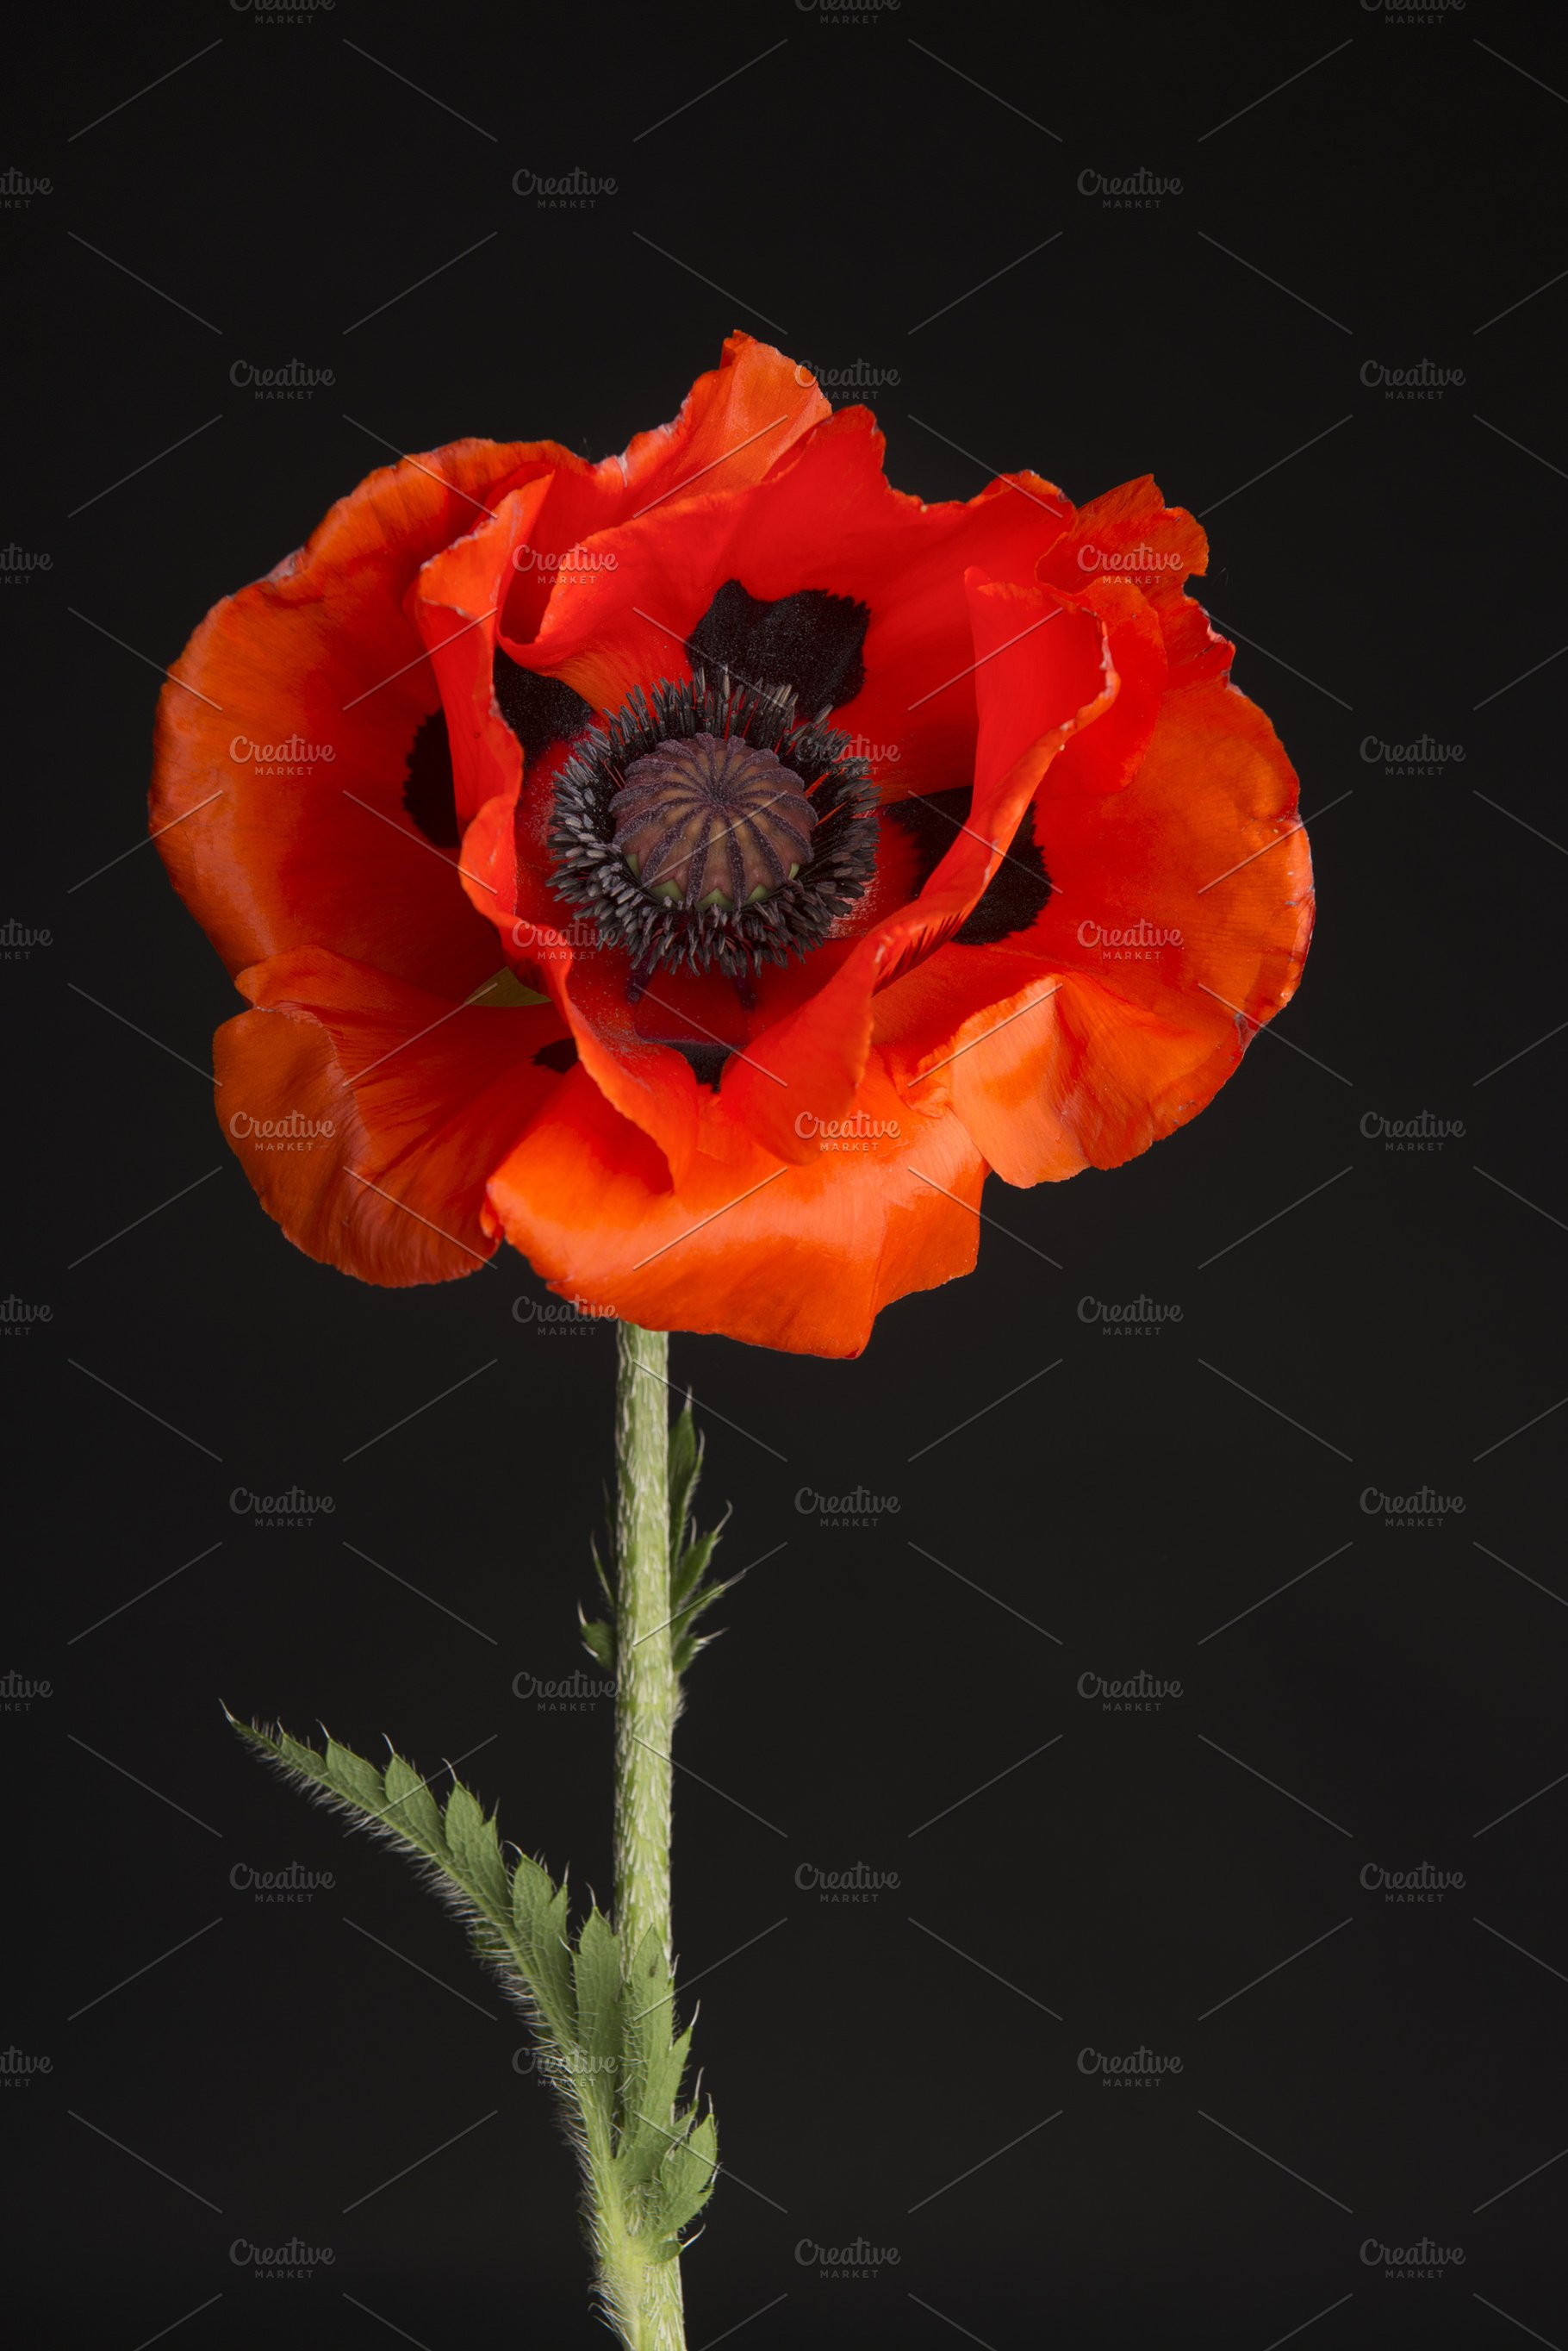 Blooming Red Poppy Flower Head High Quality Nature Stock Photos